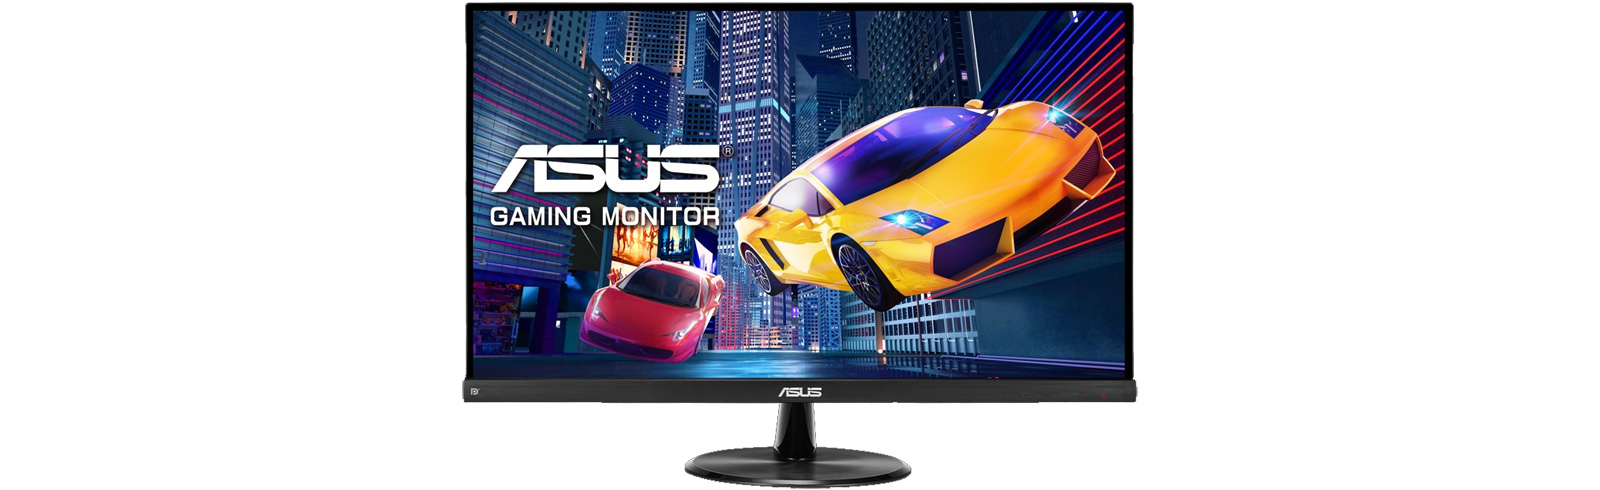 "Asus VP249QGR is a 23.8"" FHD IPS monitor with up to 144Hz refresh rate"